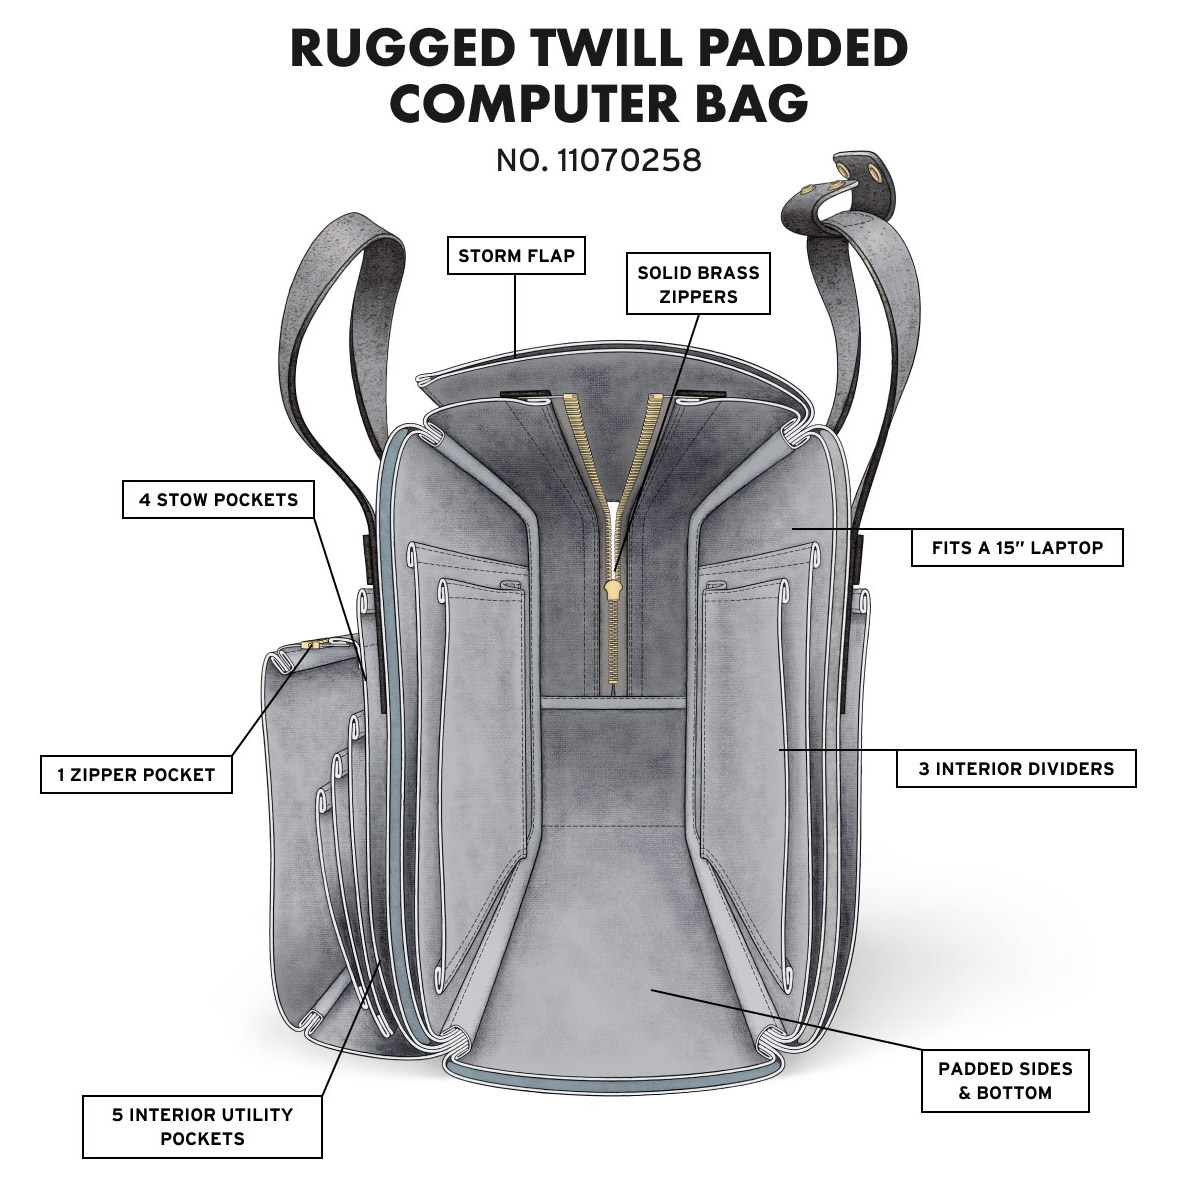 Filson Padded Computerbag Explained